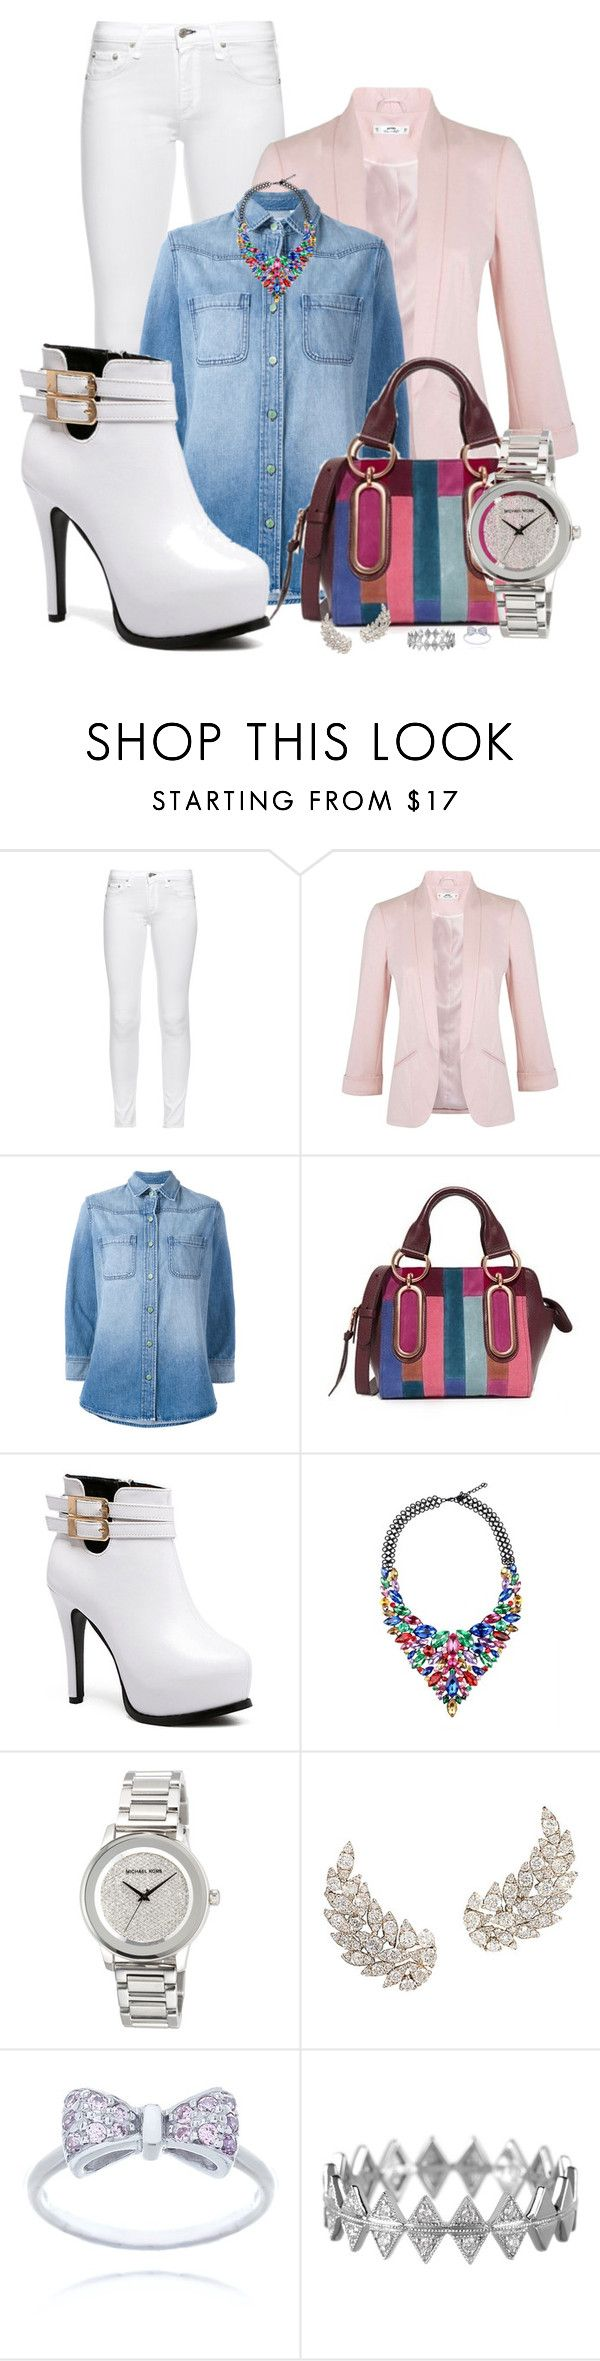 """Modern Muse 2"" by spells-and-skulls ❤ liked on Polyvore featuring rag & bone, Miss Selfridge, Sandrine Rose, See by Chloé, MICHAEL Michael Kors, Bony Levy, modern, skinnyjeans, MissSelfridge and ankleboots"